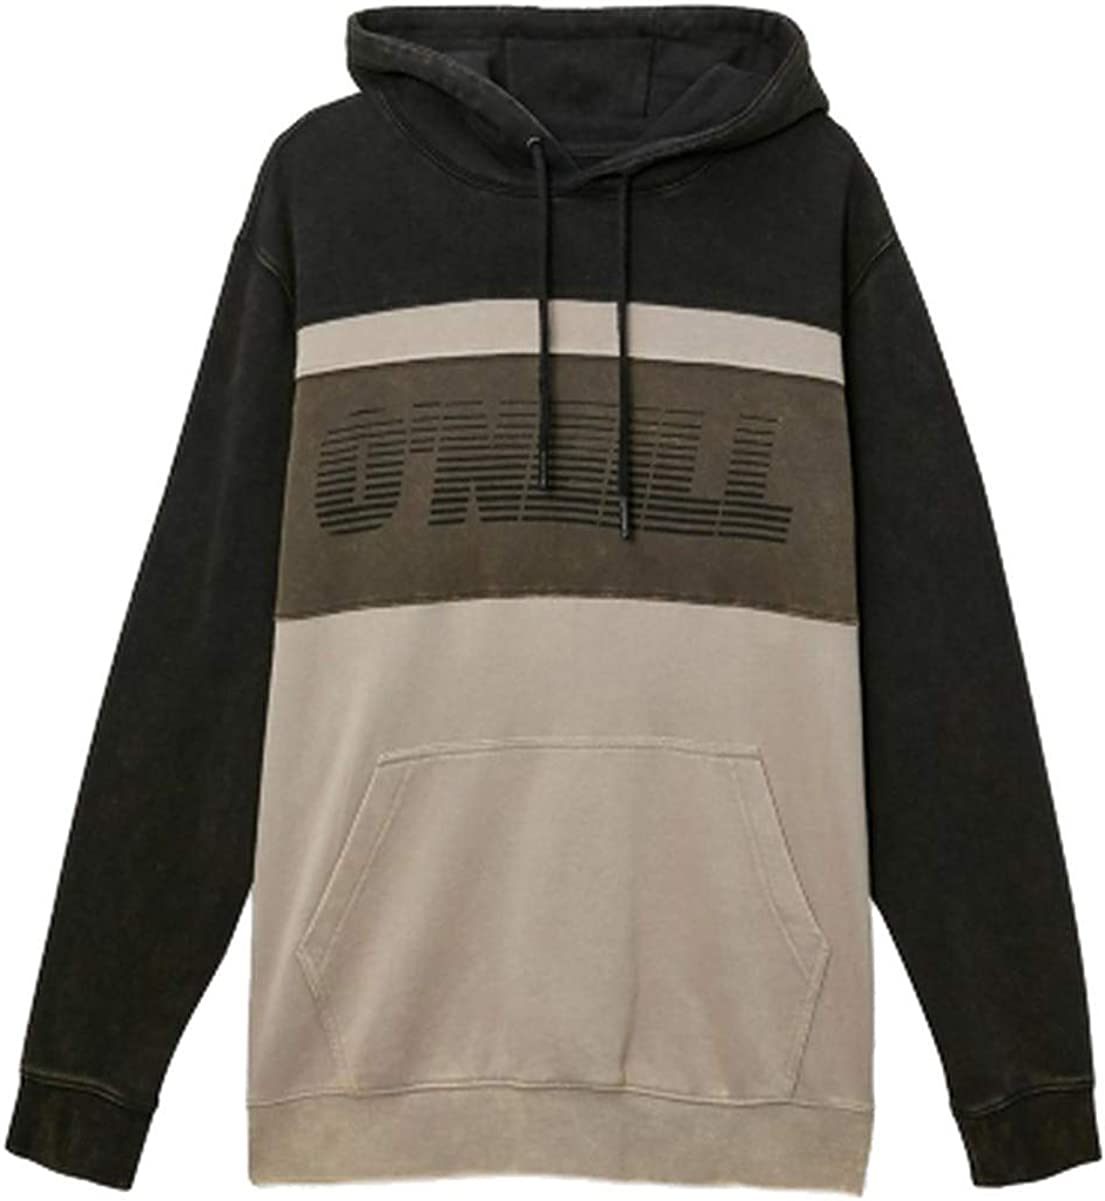 O'Neill Max Max 77% OFF 48% OFF Men's Classic Sweatshirt Hoodie Pullover